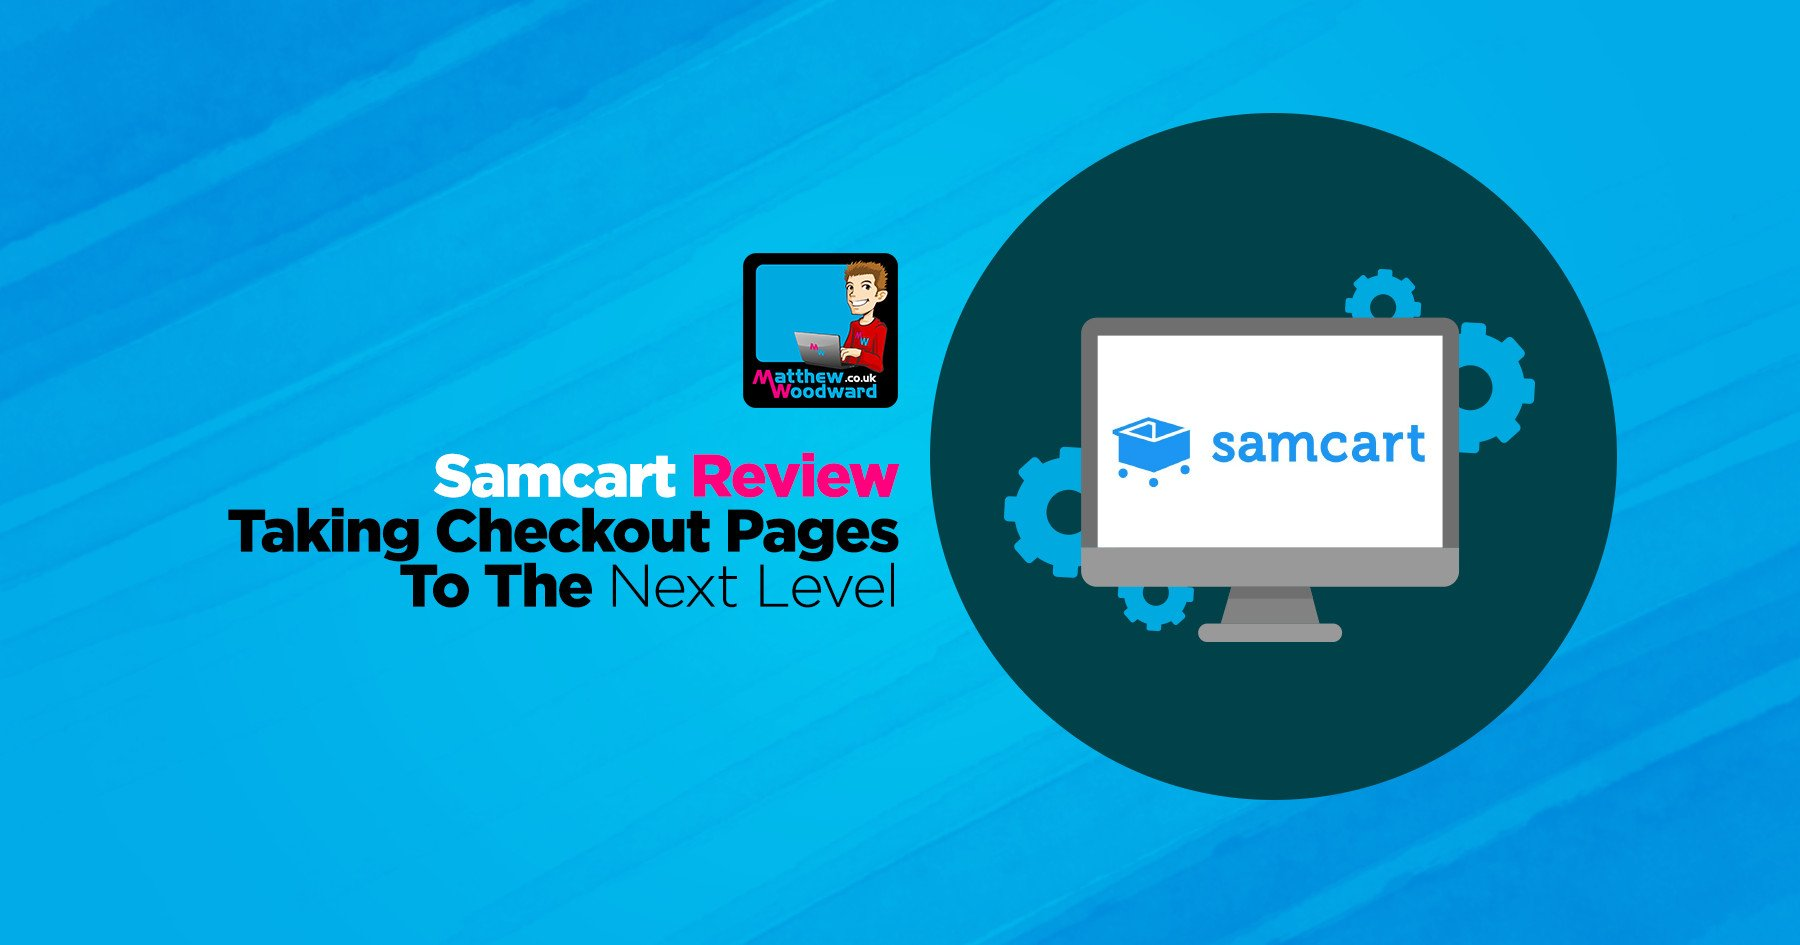 Samcart Support Number